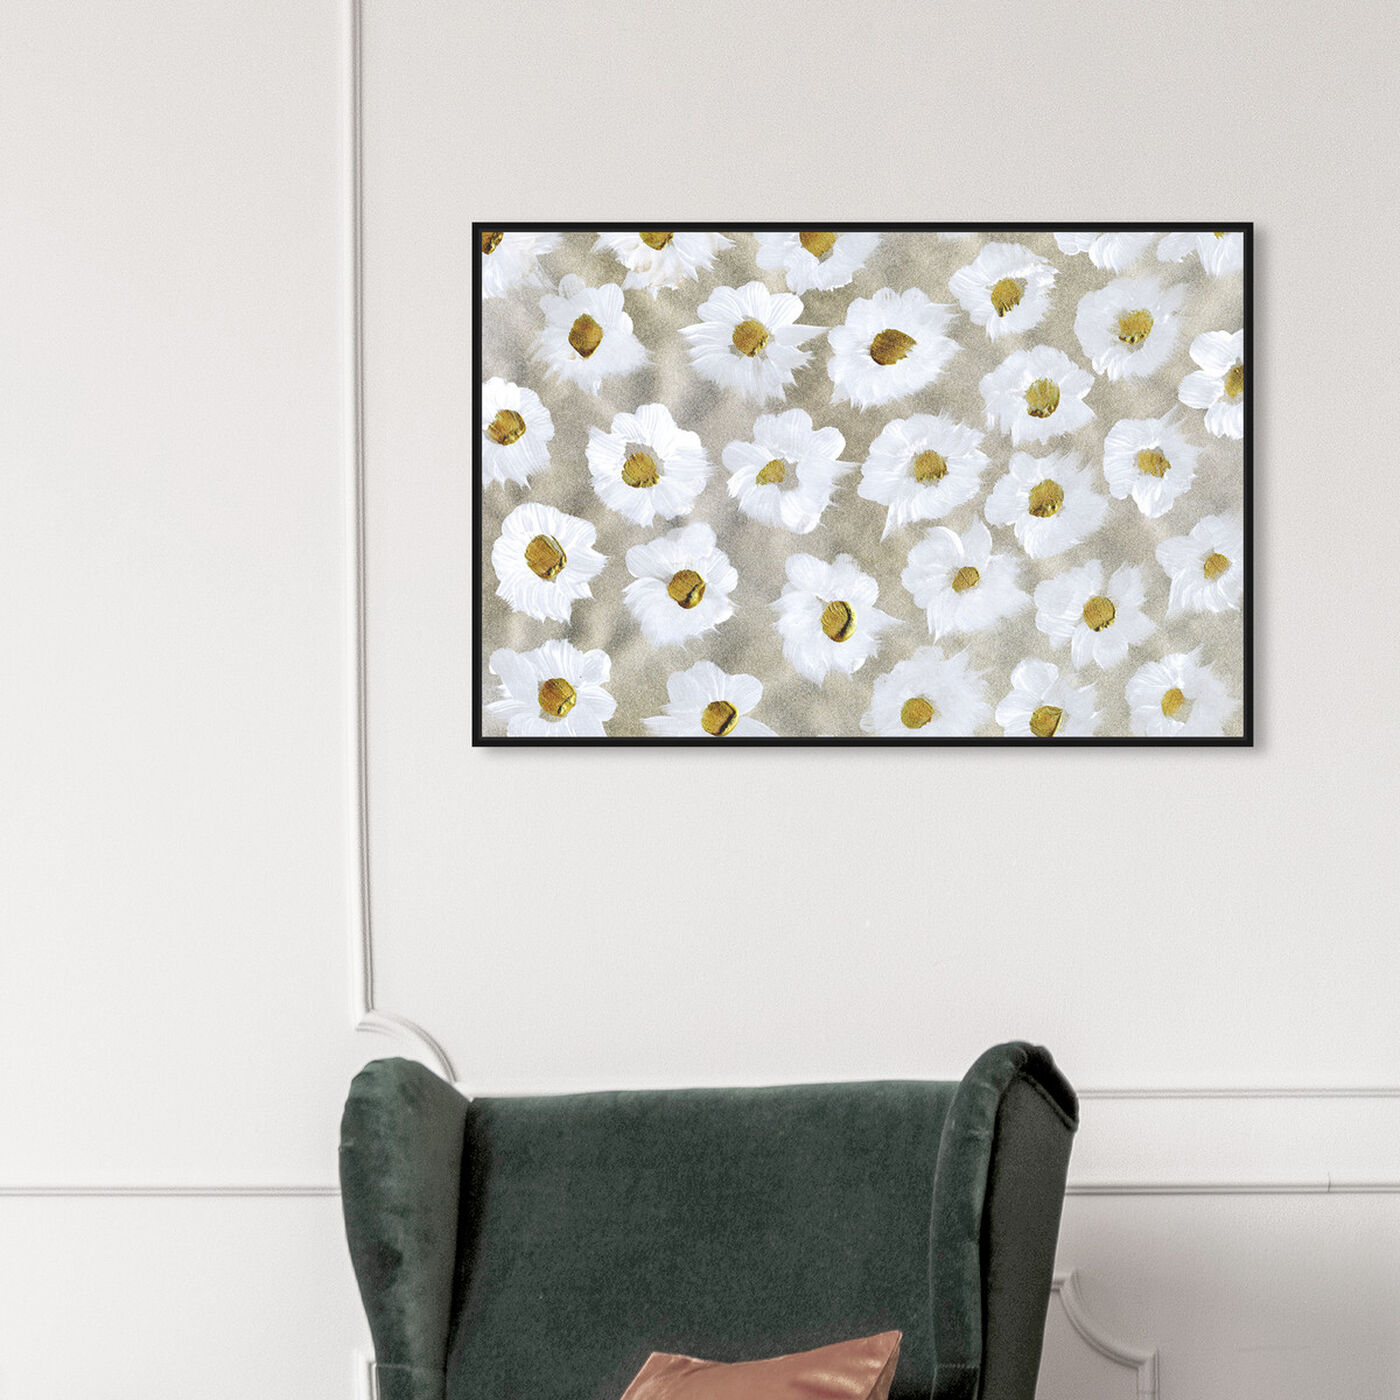 Hanging view of Margaritas featuring floral and botanical and florals art.